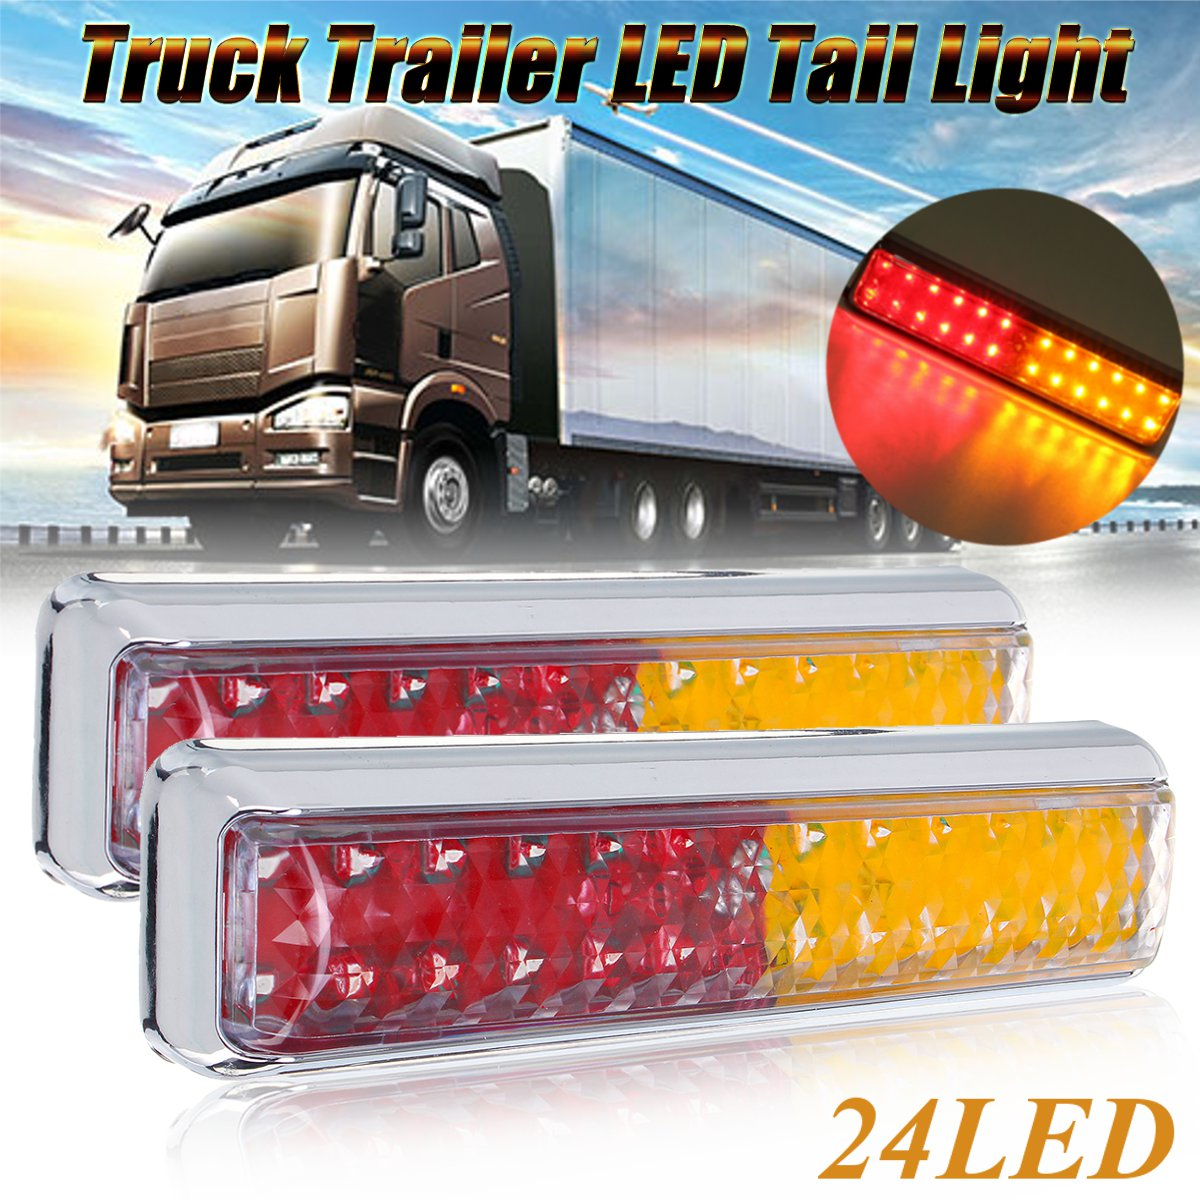 Commercial Vehicle Parts 4x LED Front Marker Light 12V 24V MAN Position Lamp Truck Trailer 12 24 Volt Vehicle Parts & Accessories